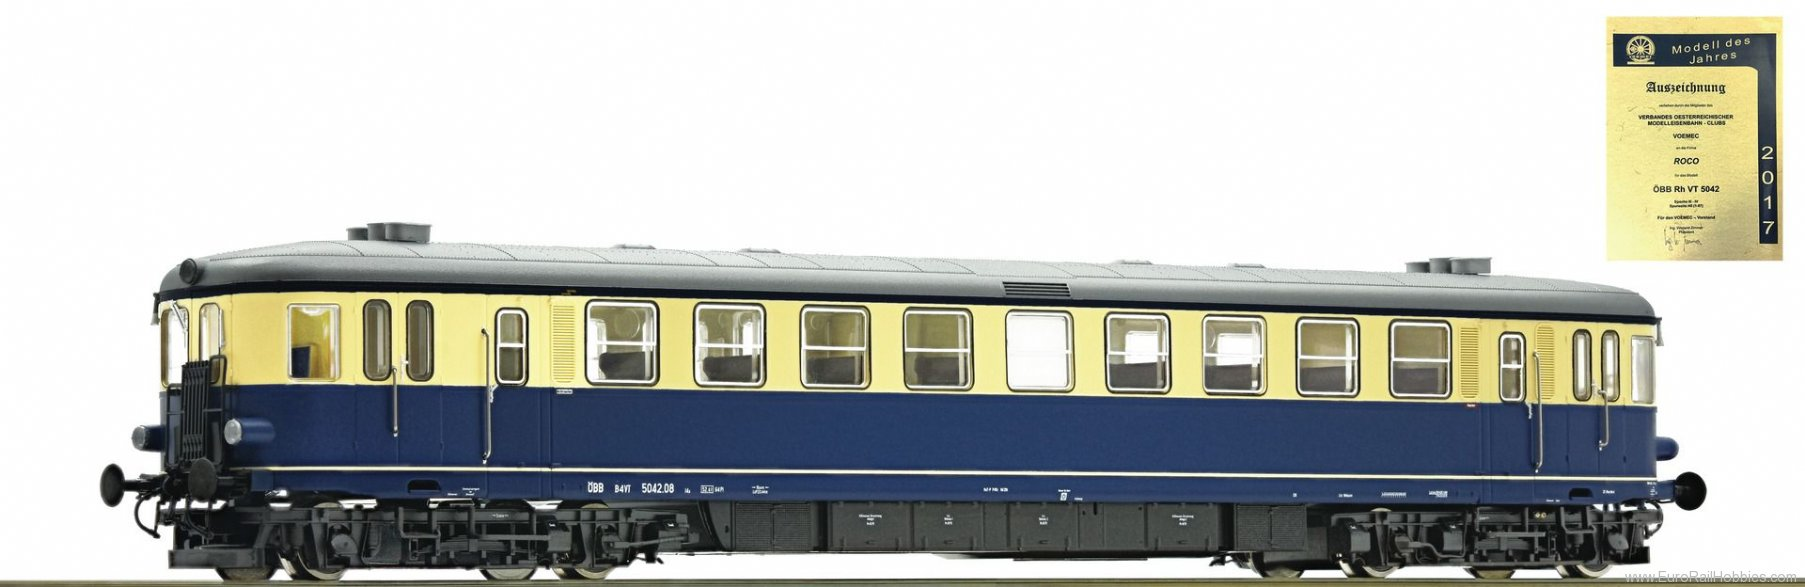 Roco 73143 Diesel railcar 5042.08, OBB (Digital)